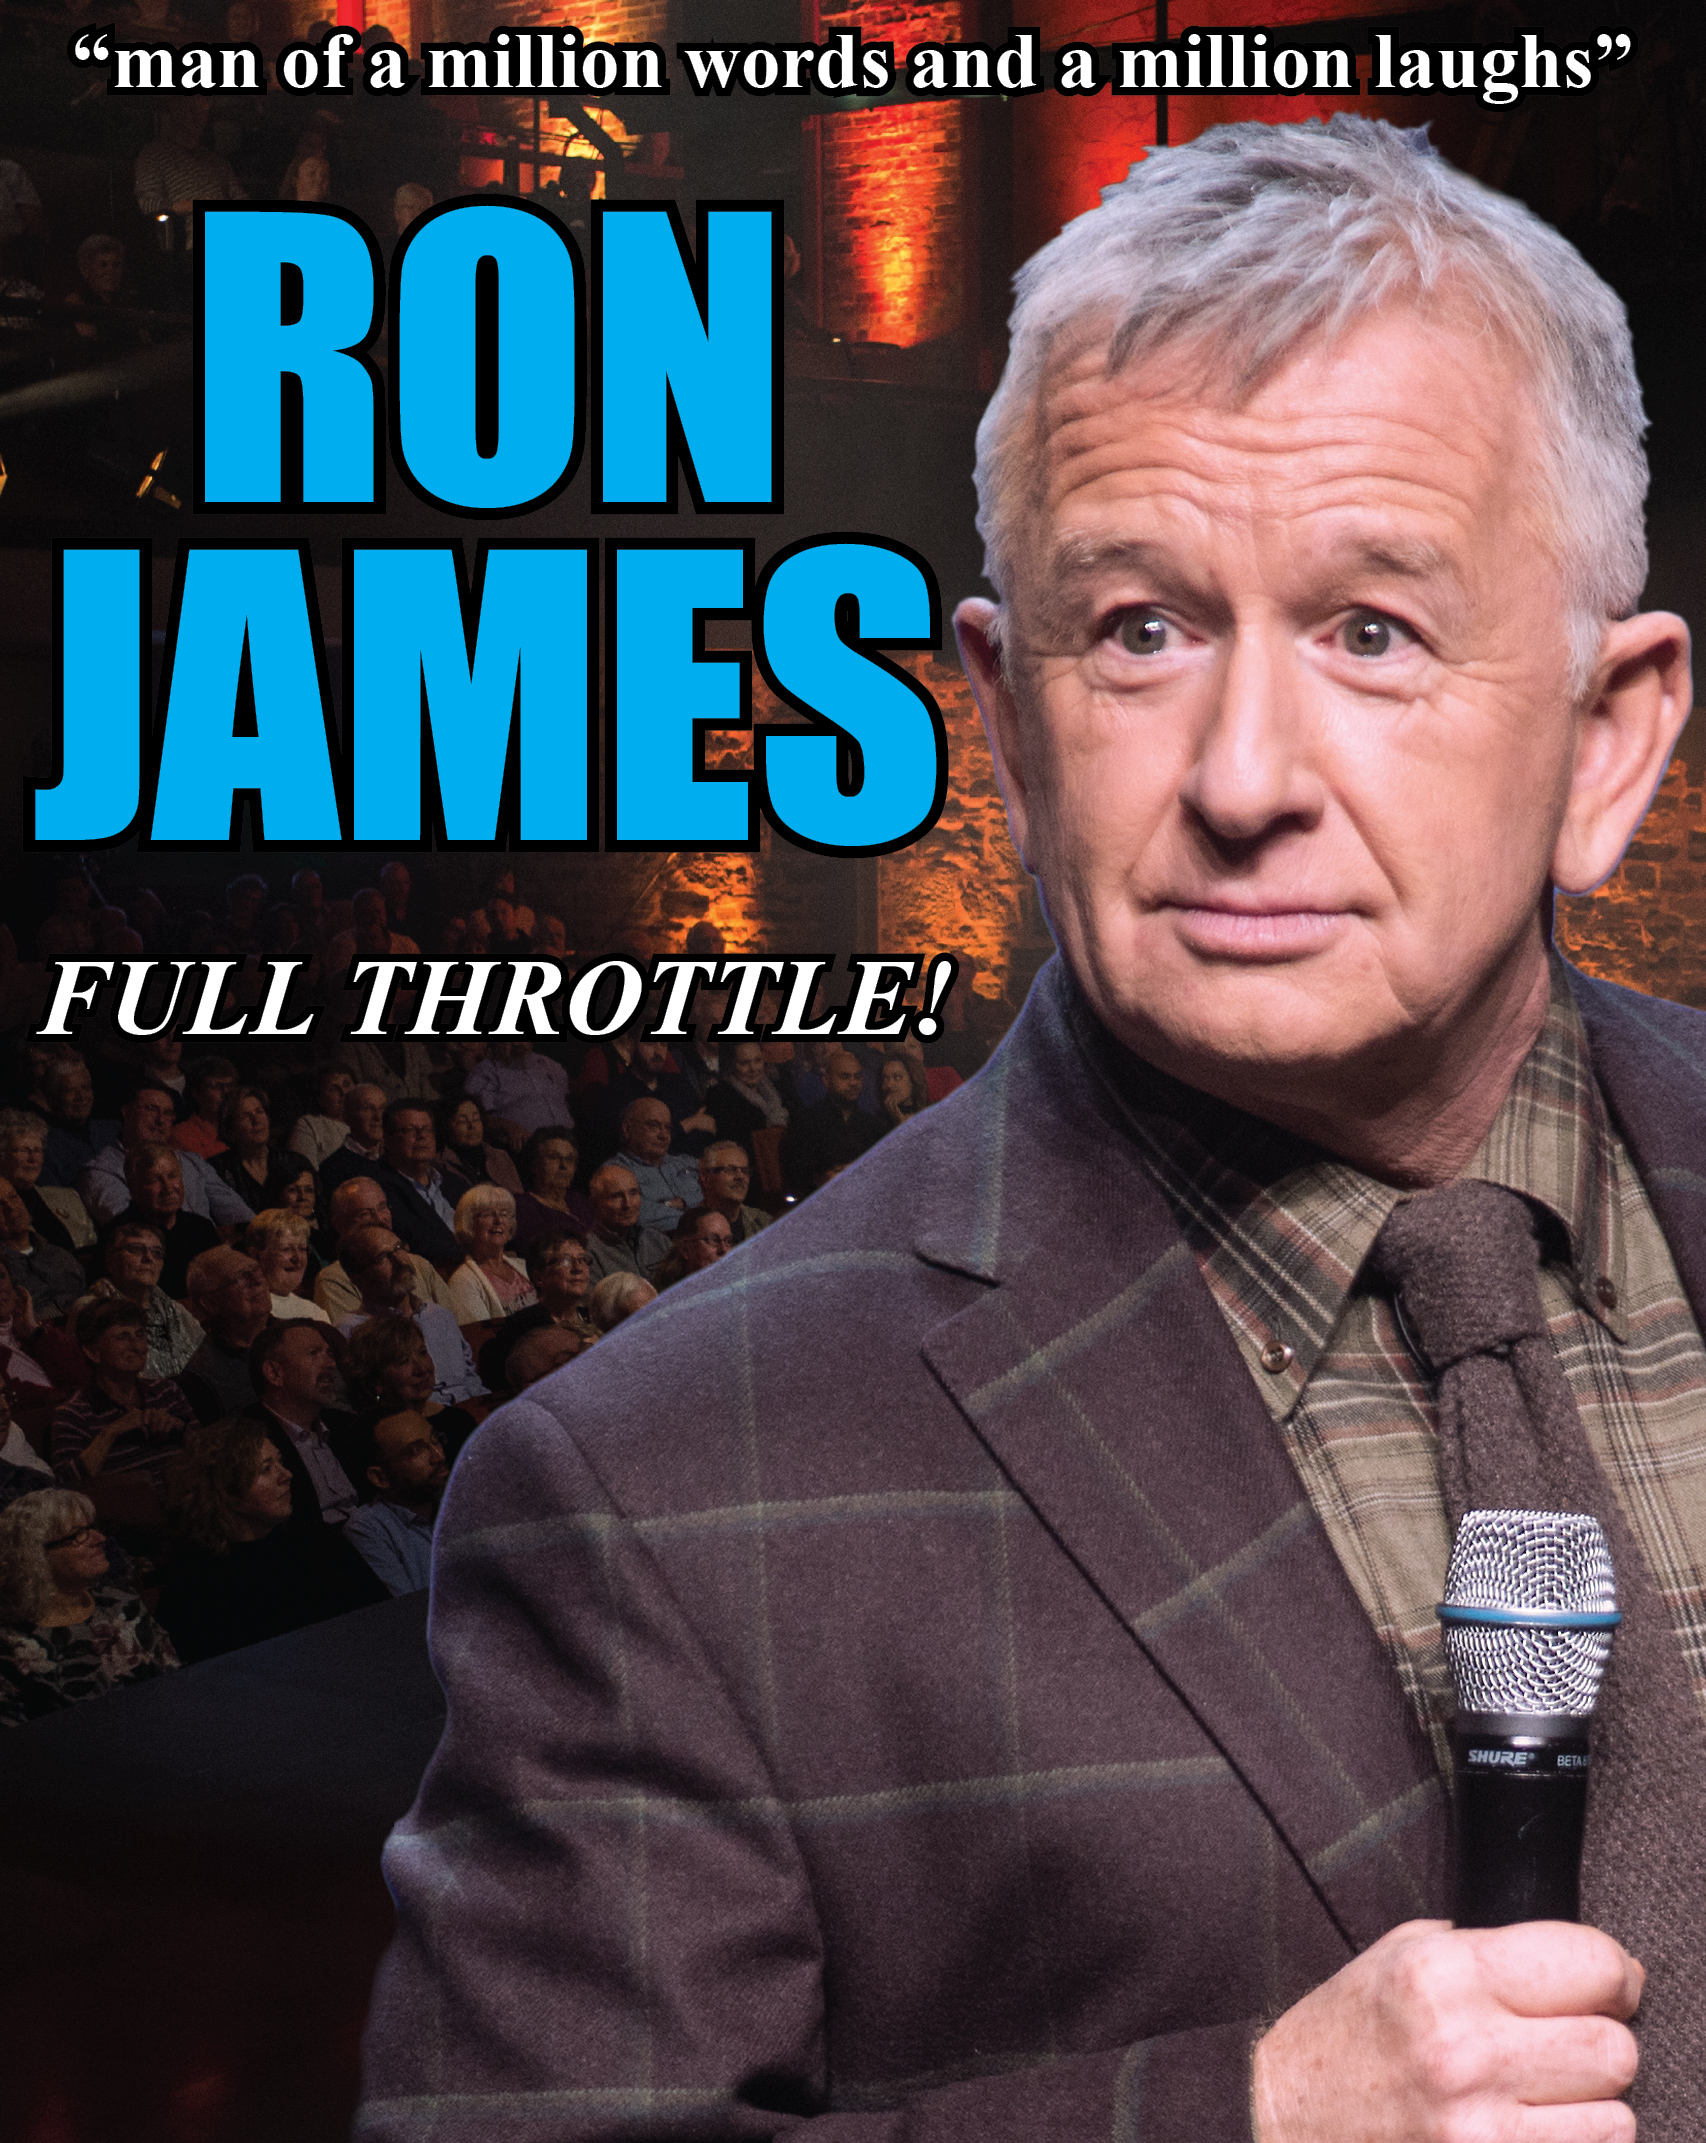 Promotional Image for the upcoming Ron James comedy show at the Gravenhurst Opera House February 27